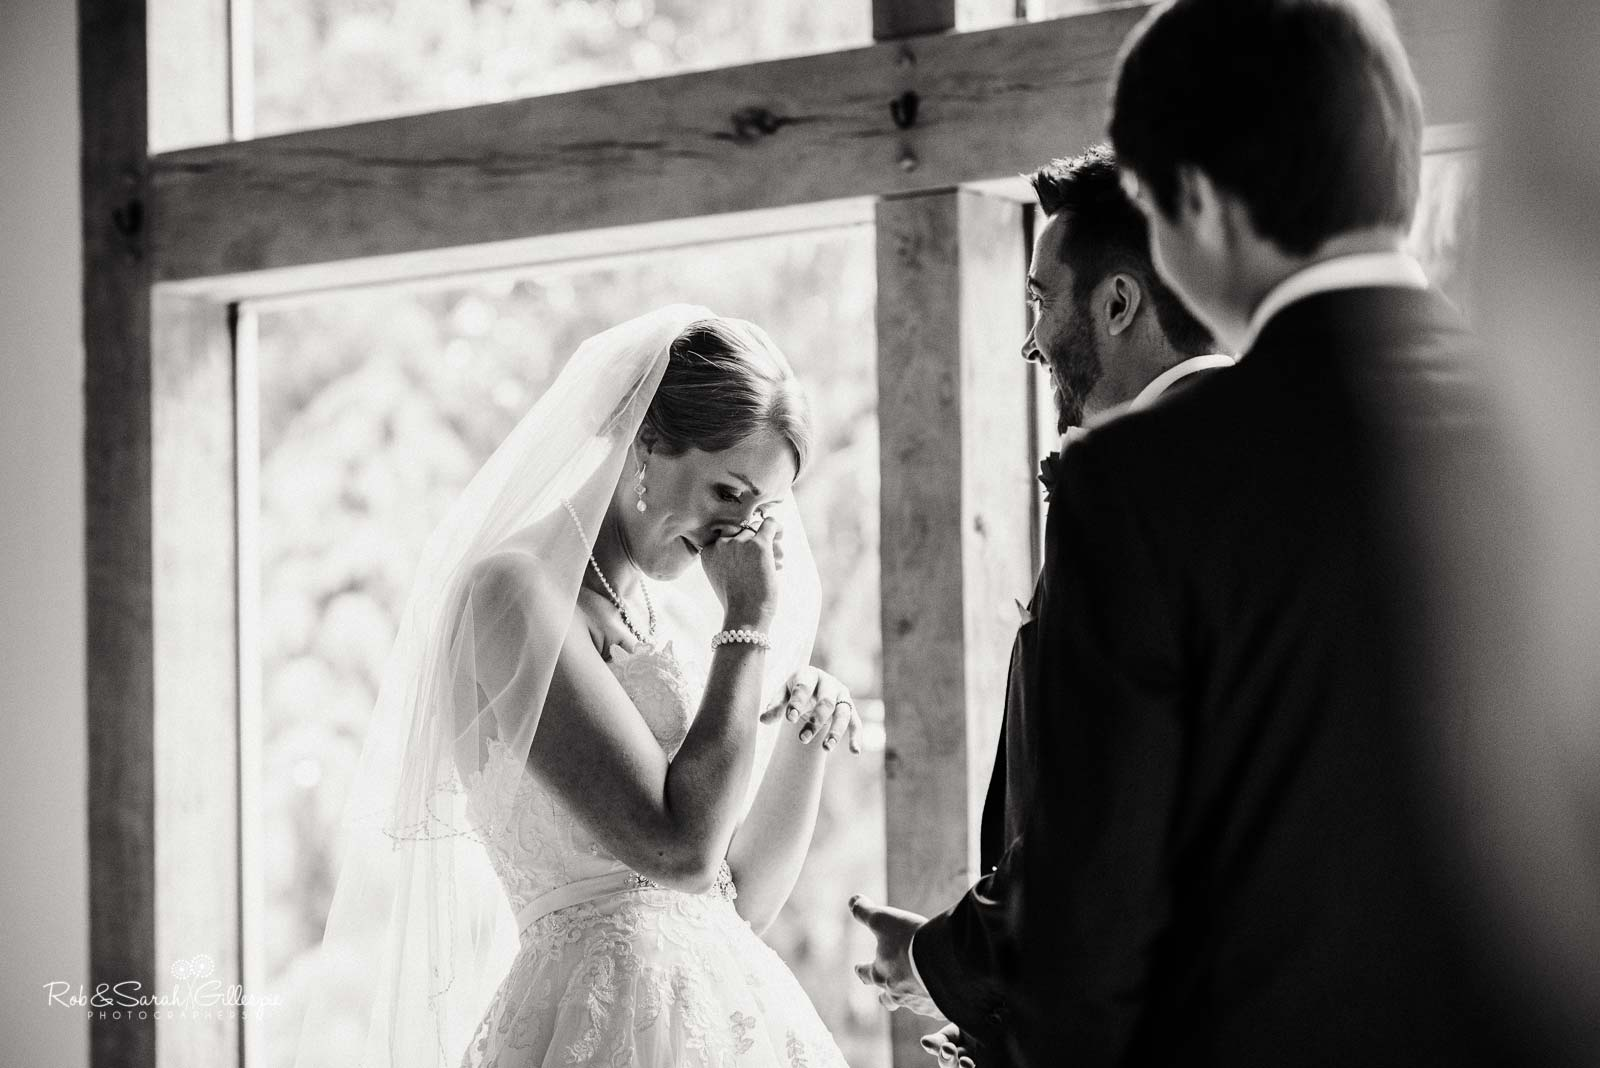 Bride emotional during ceremony at The Mill Barns wedding